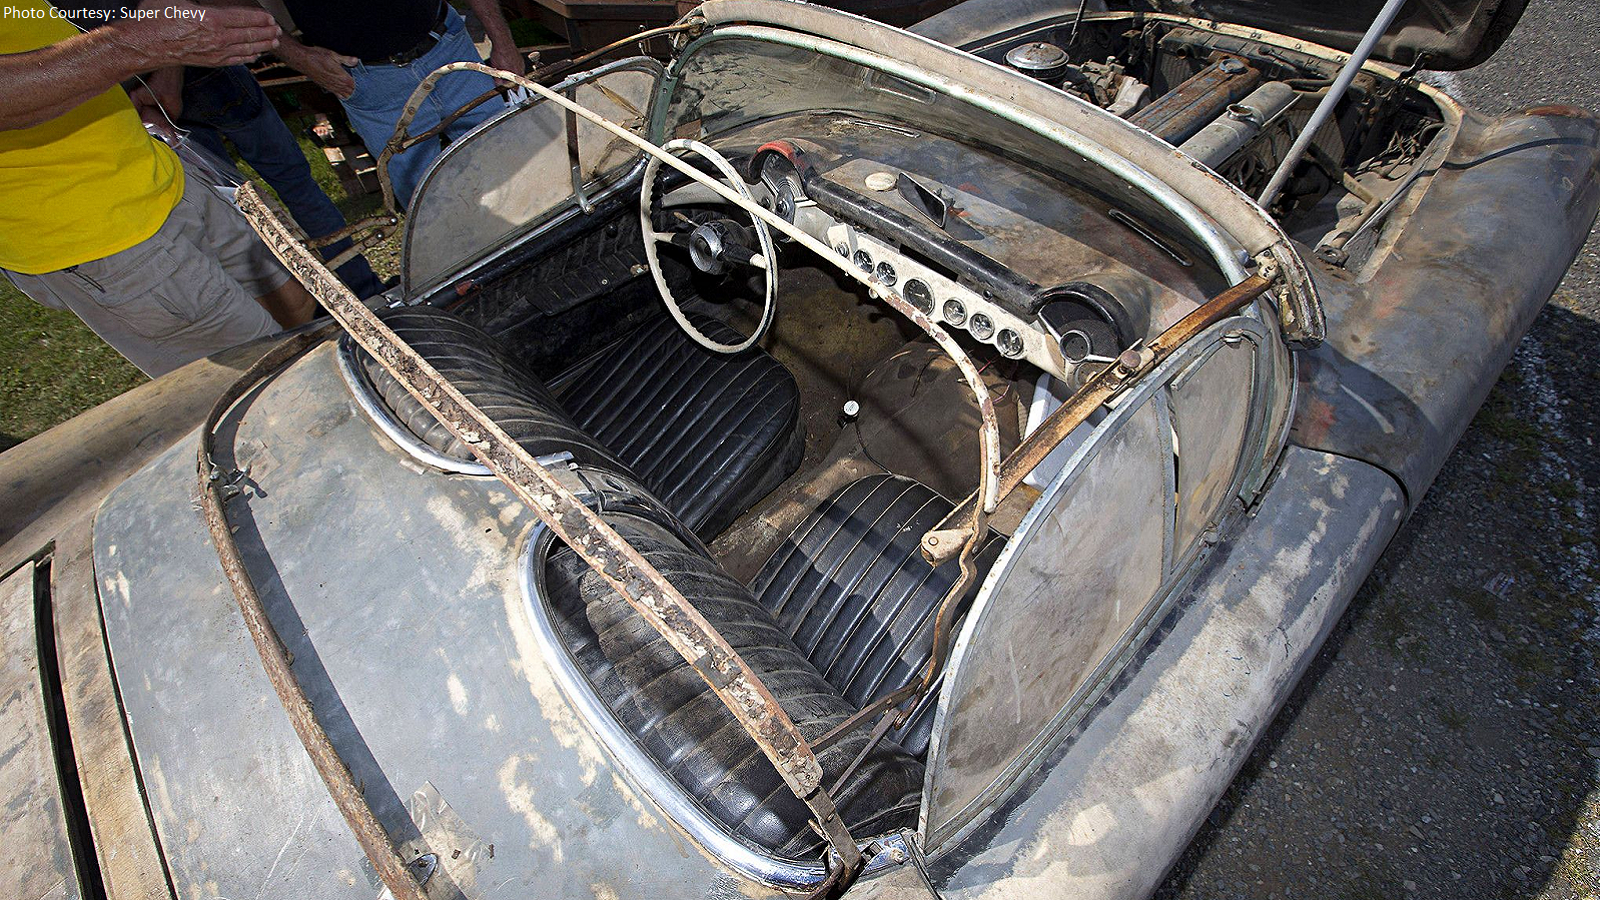 Pair of C1 Corvettes Equal Ultimate Barn Find